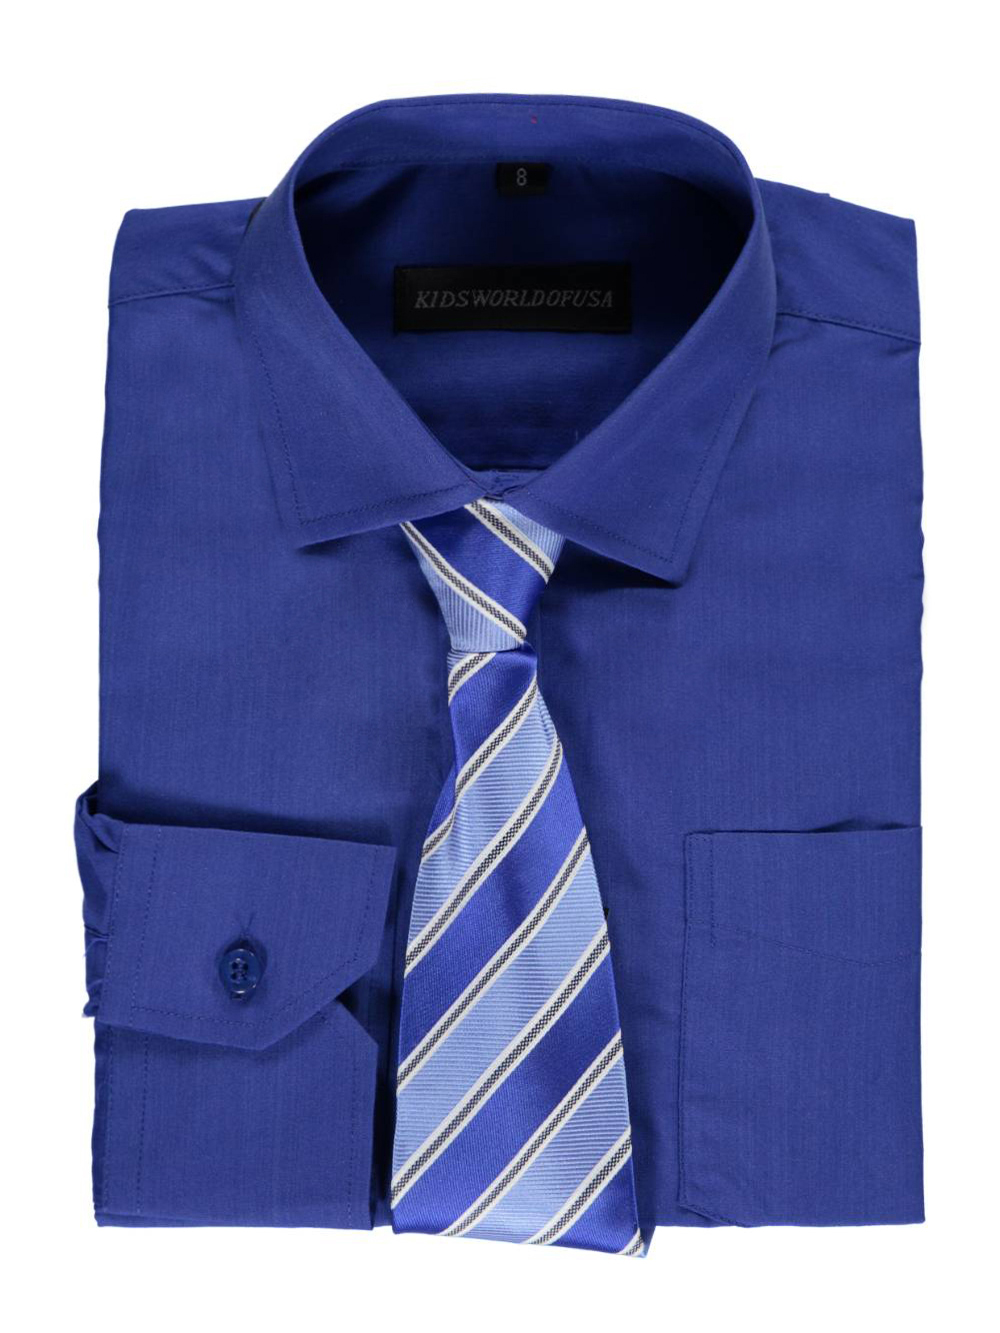 Kids World Big Boys' Dress Shirt with Accessories (Sizes 8 - 20) - royal blue, 20